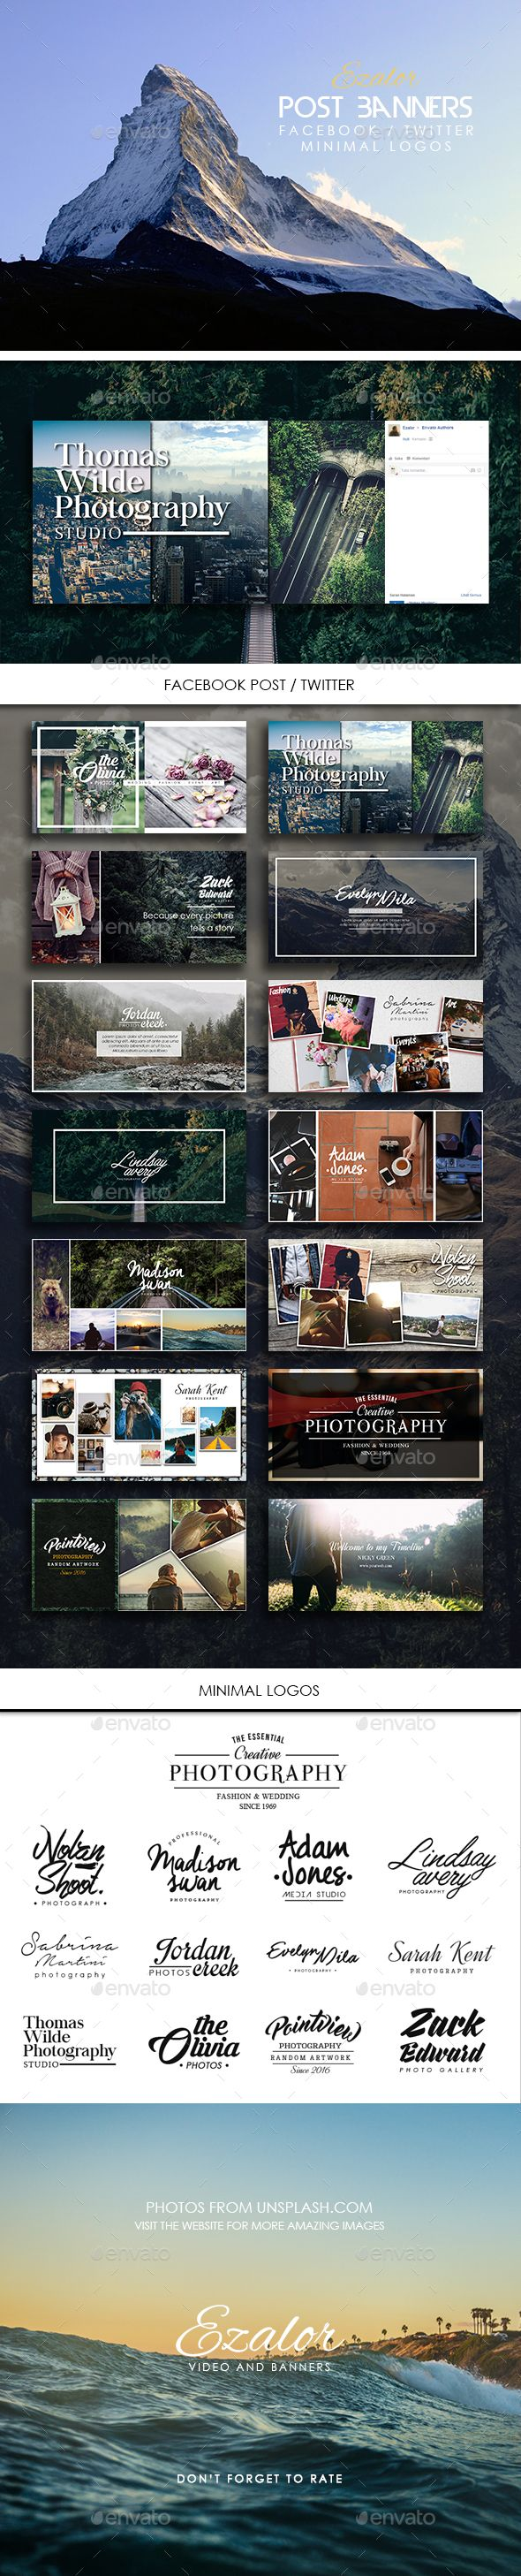 Facebook / Twitter Banners Photography